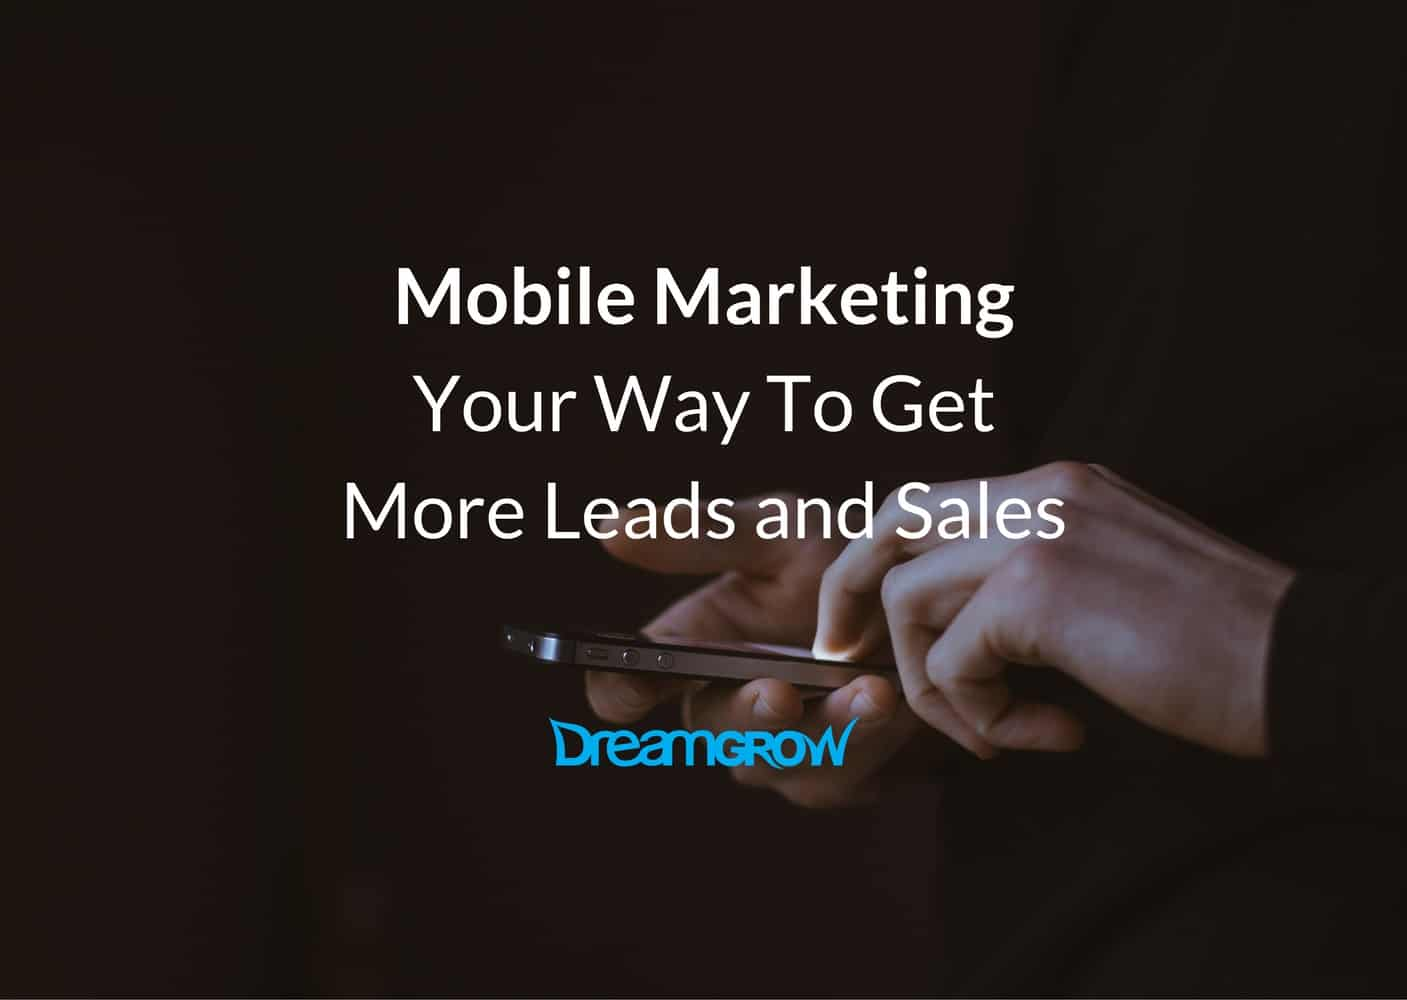 mobile-marketing-leads-sales-cover